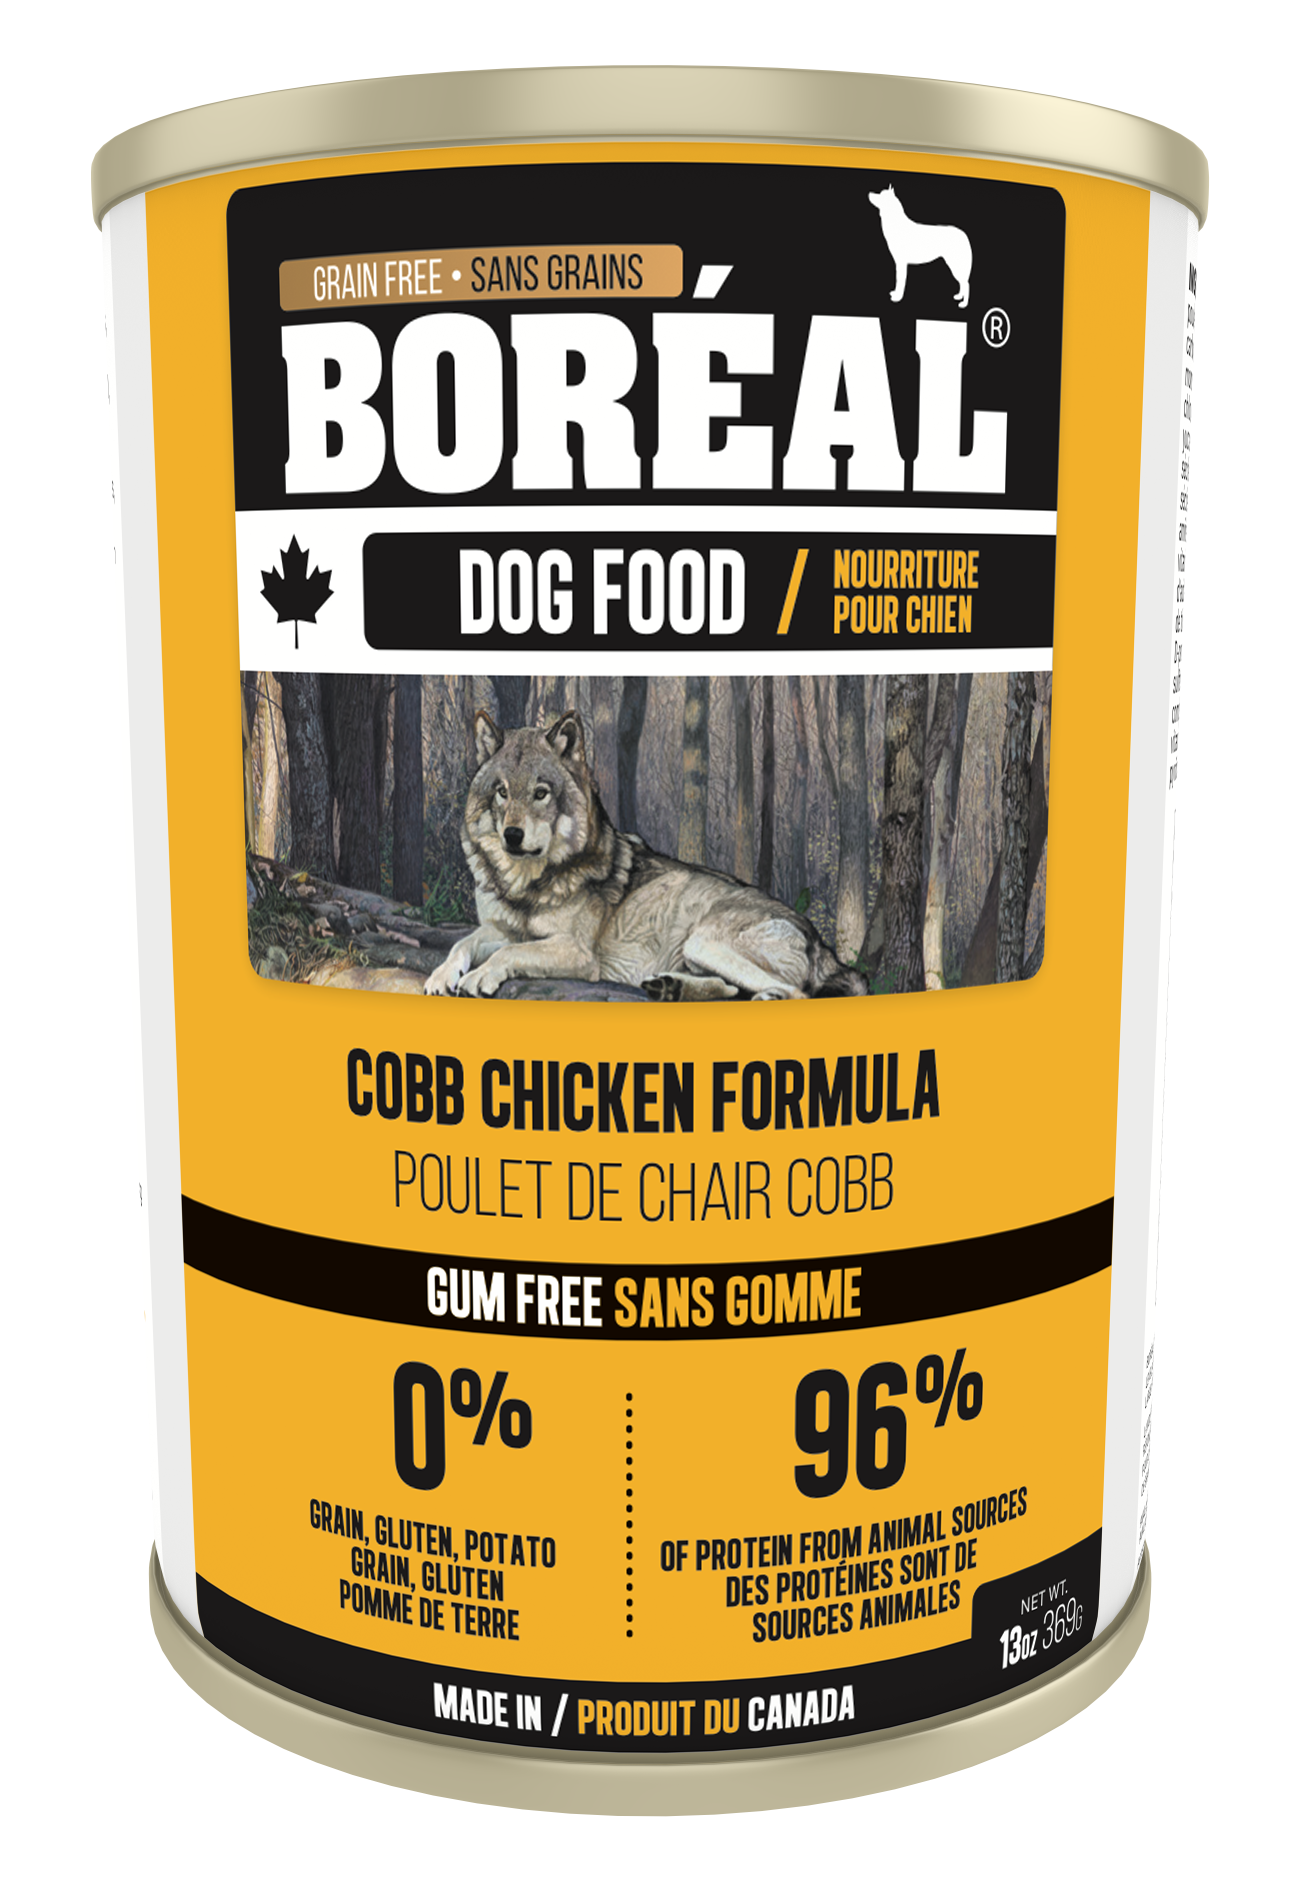 Canadian Cobb Chicken Formula